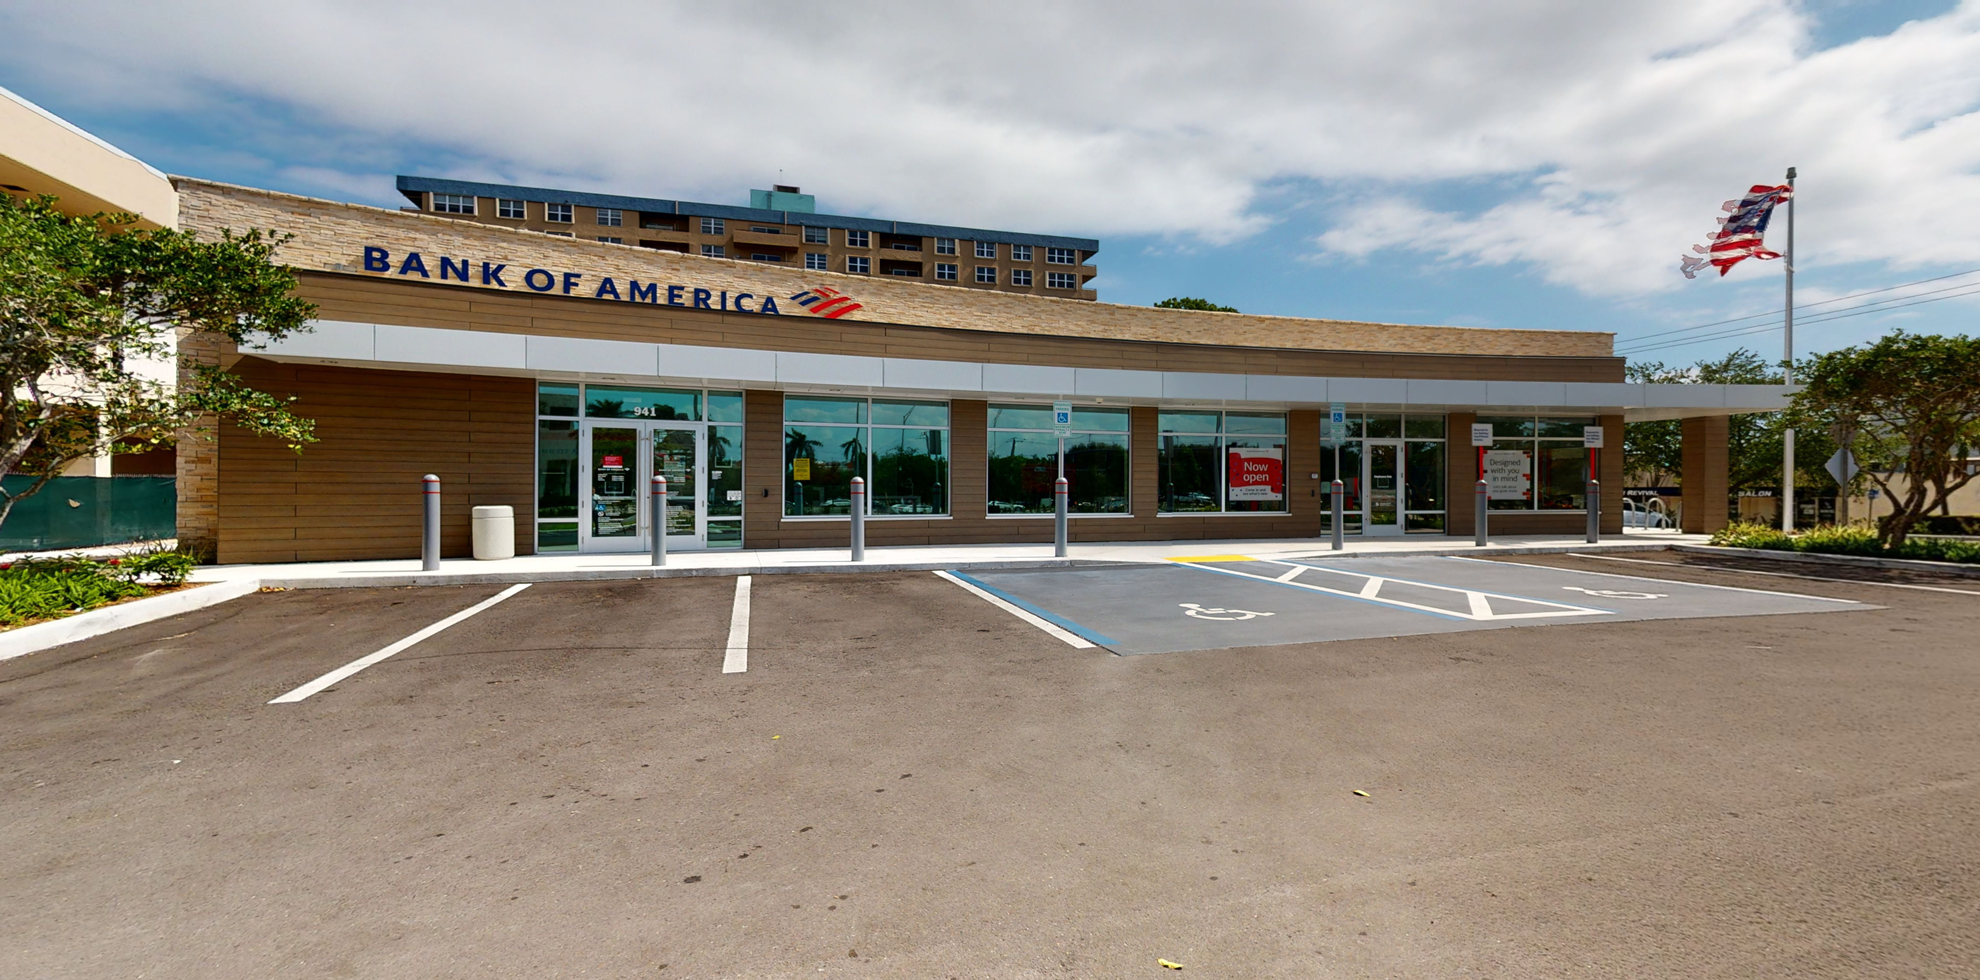 Bank of America financial center with drive-thru ATM | 941 SE 17th St, Fort Lauderdale, FL 33316